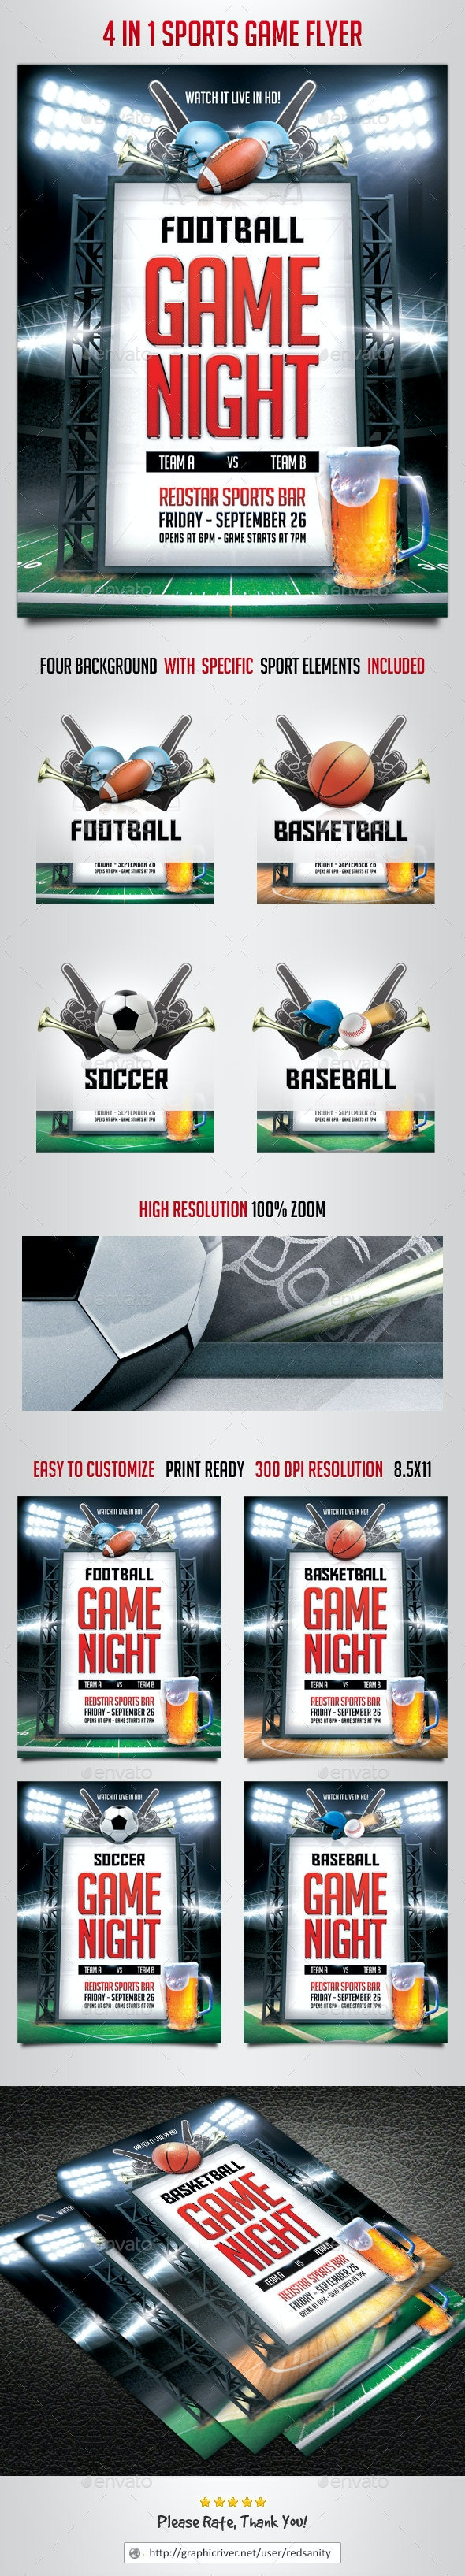 4 in 1 Sports Game Flyer - Sports Events